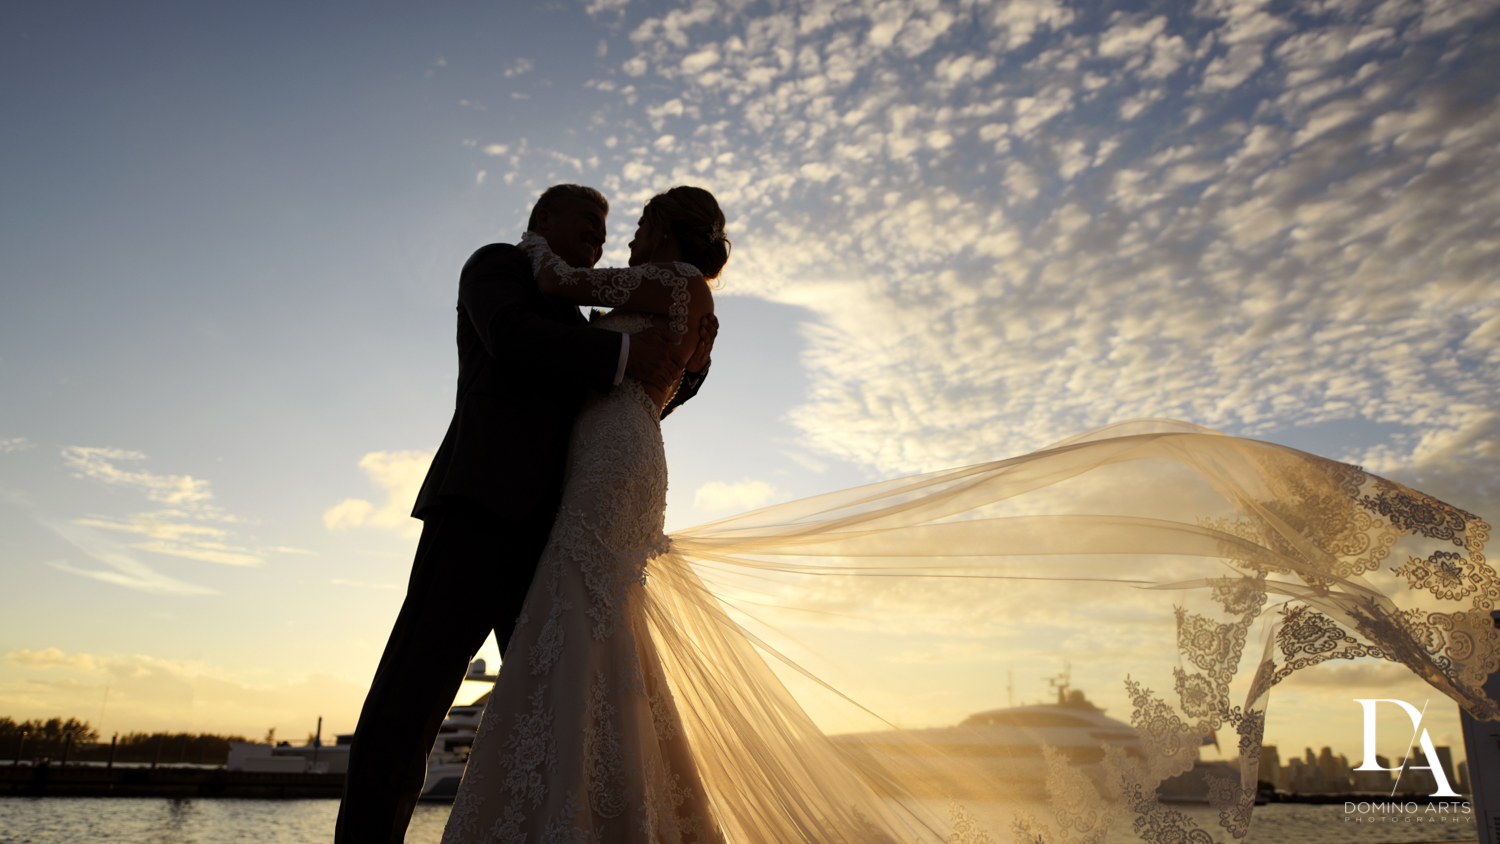 sunset at Classic & Elegant Wedding Photography at Fisher Island Miami by Domino Arts Photography